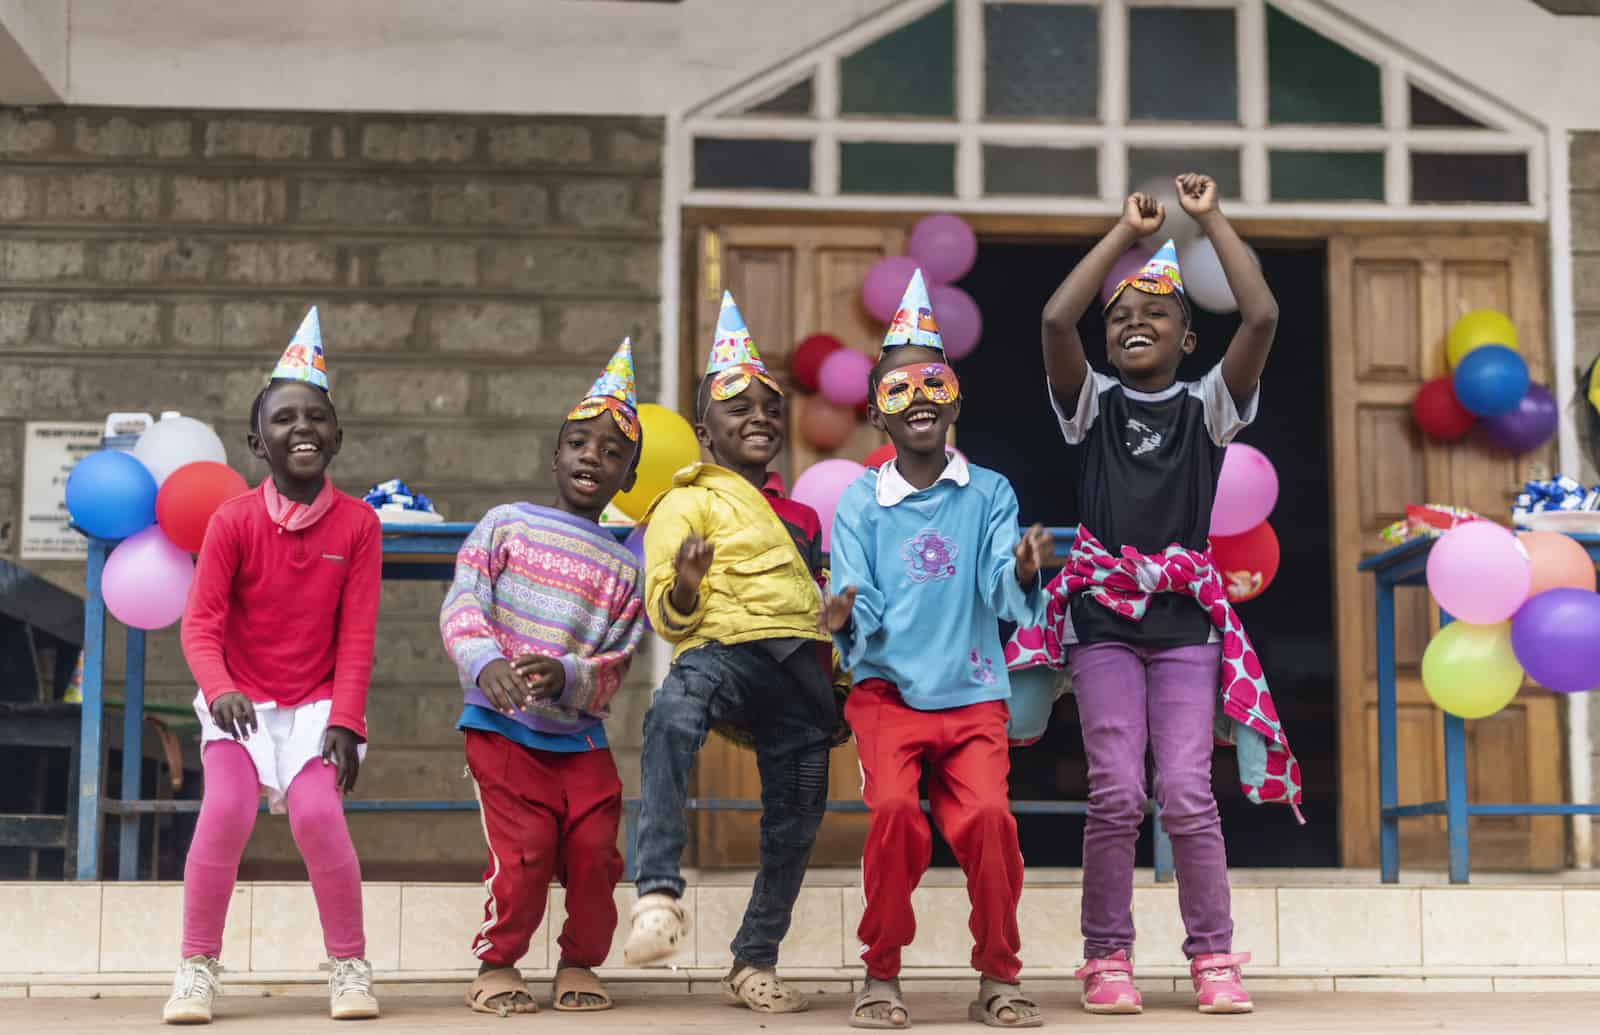 A group of children wearing party hats and party masks smile and dance outside a church.